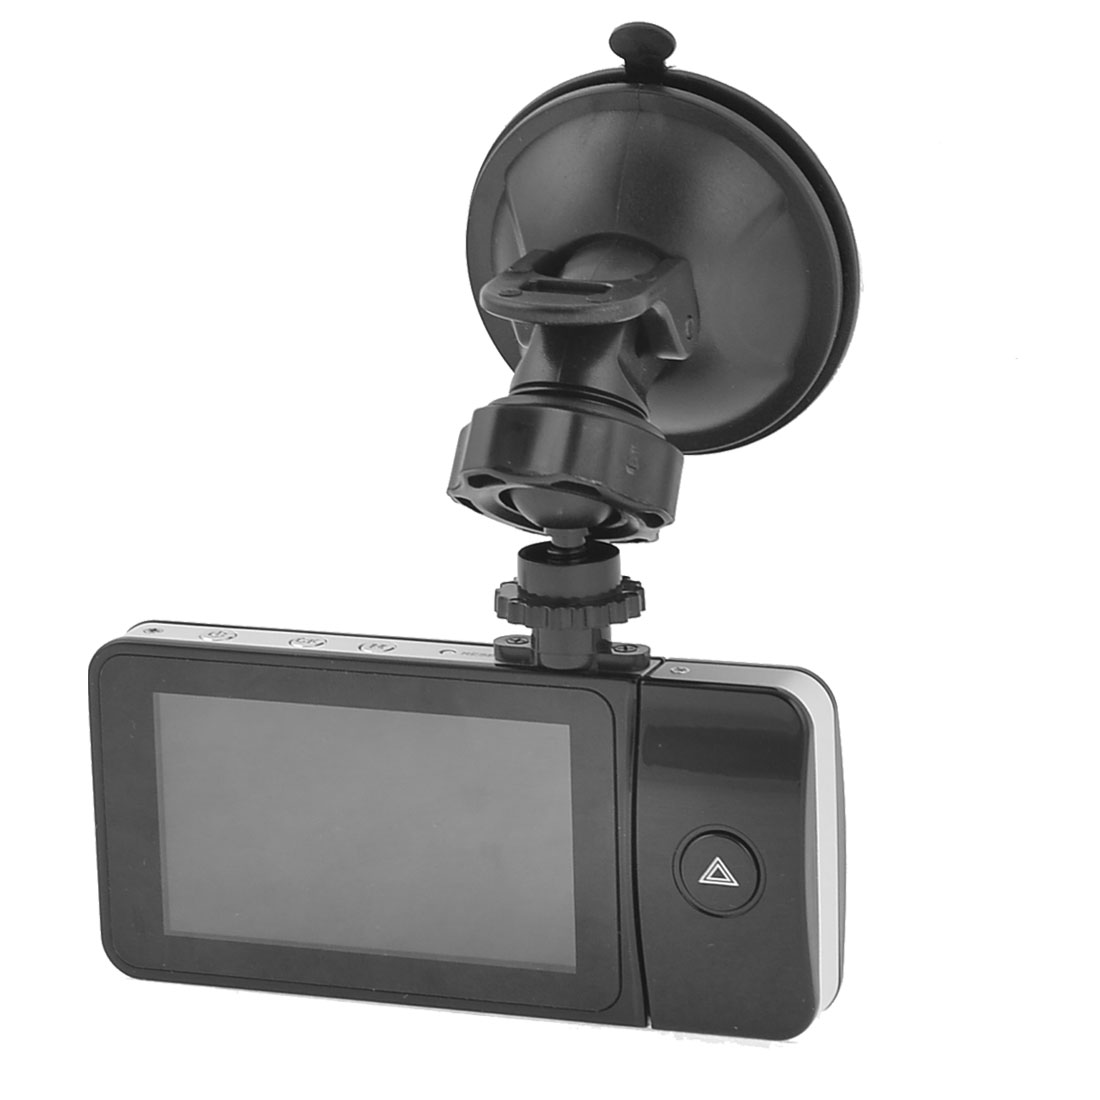 "Adjustable fULL HD 1080P 2.7"" TFT Screen Car Vehicle Camera DVR Recorder"